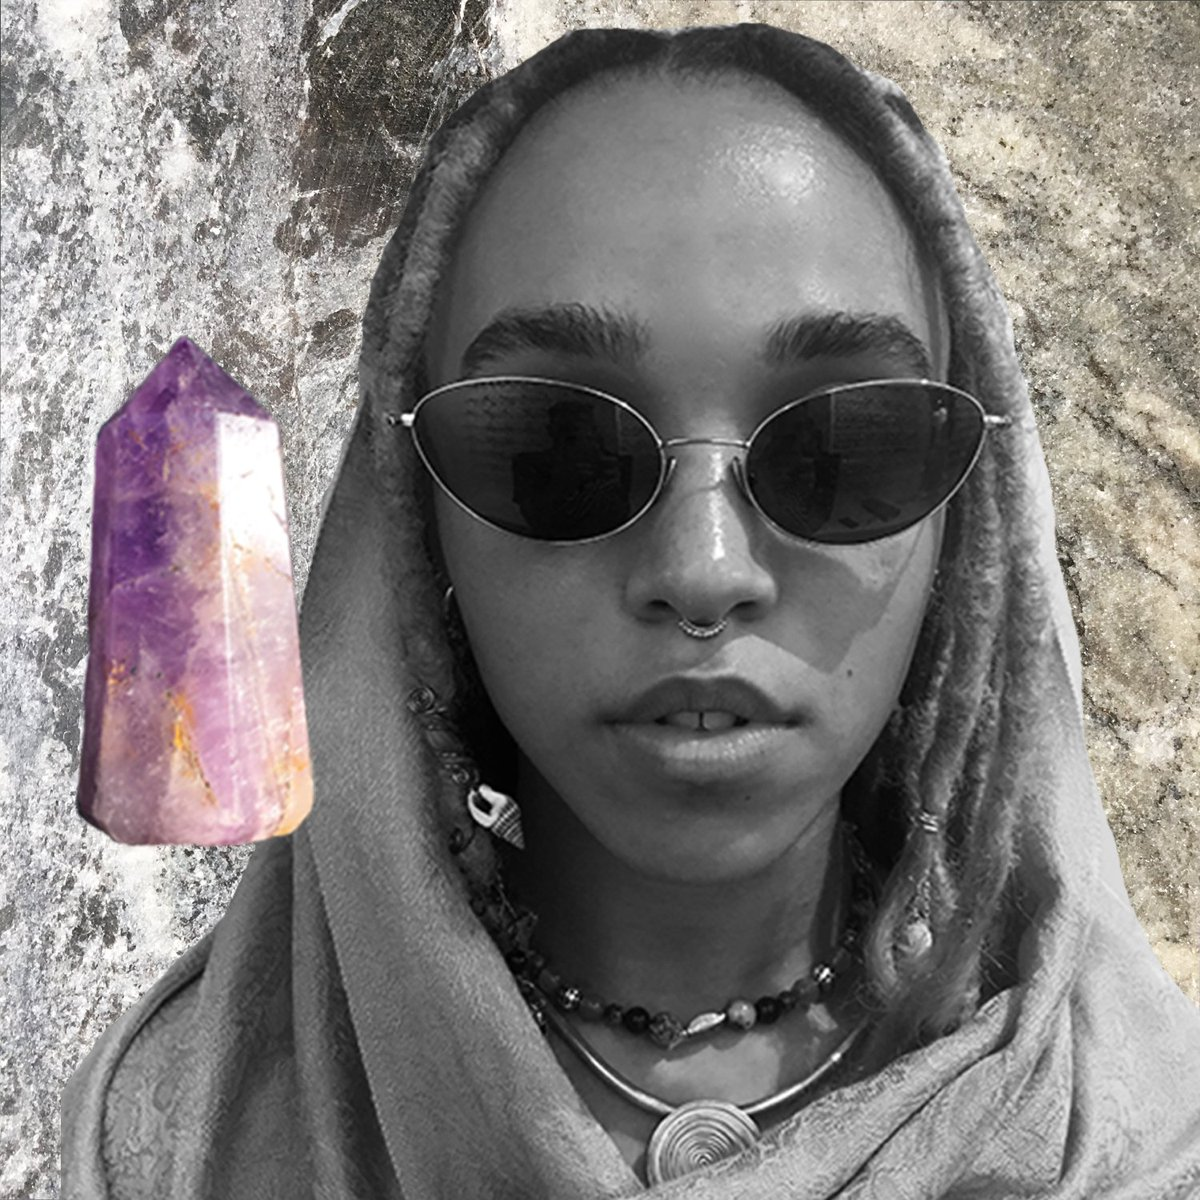 amethyst is connected with the crown chakra (sahasrara) and can assist with our quest for enlightenment <3